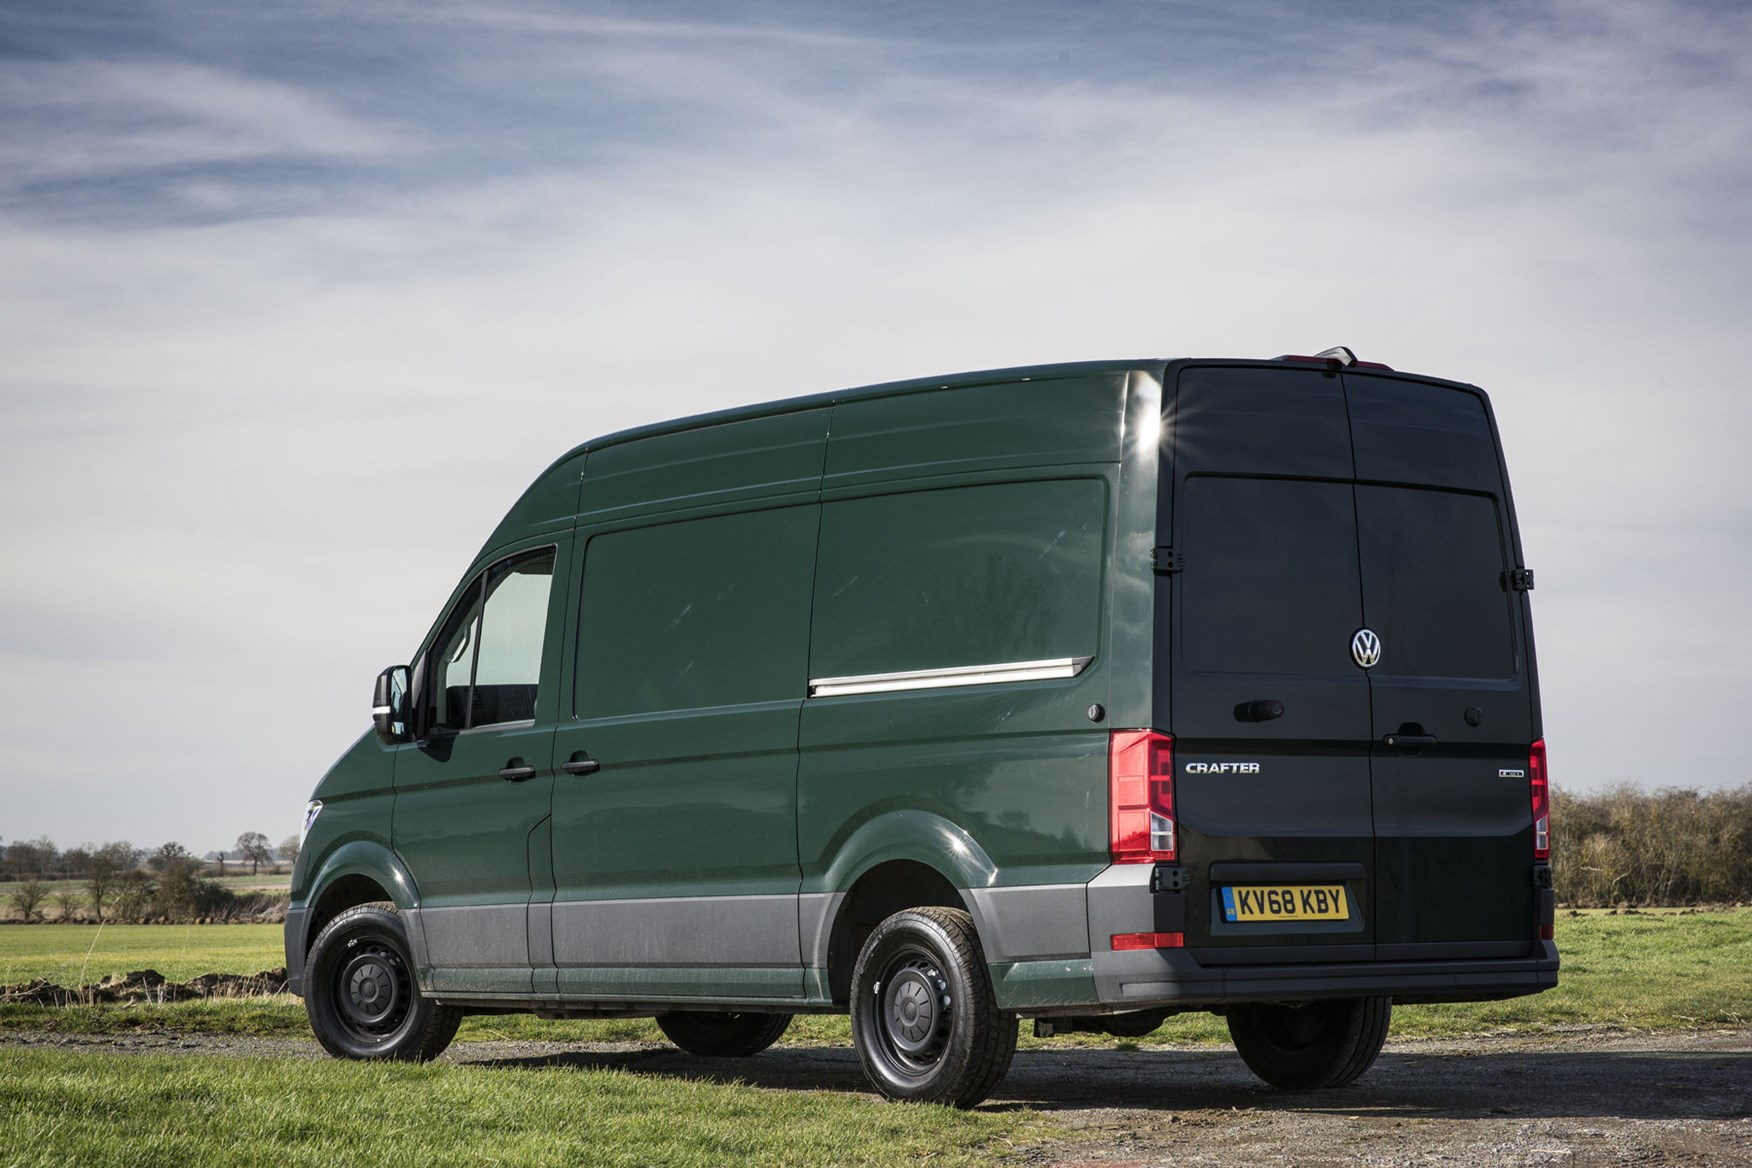 VW Crafter 4Motion review - Ontario Green, rear view